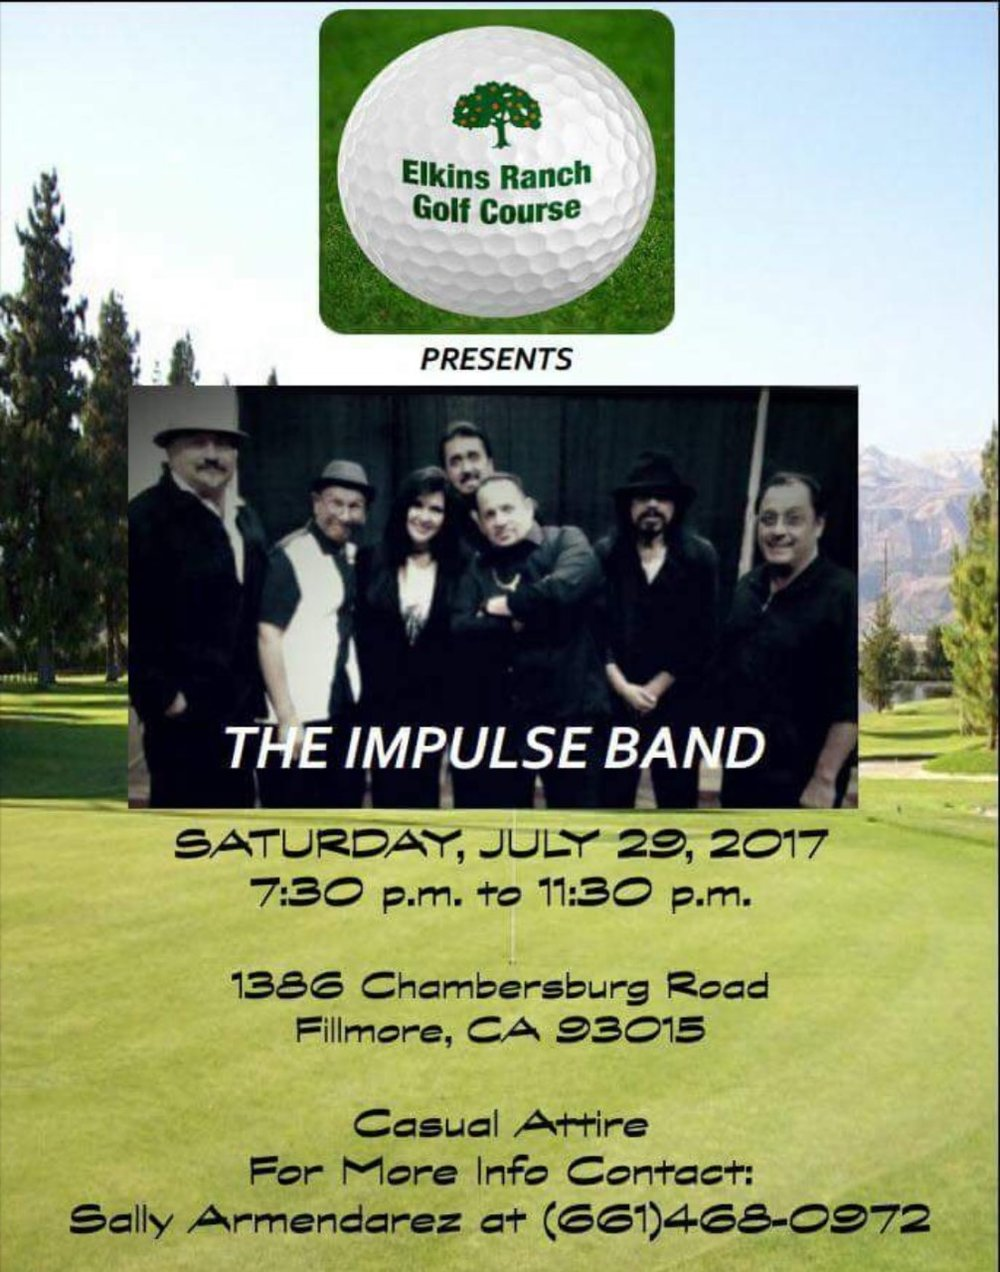 Event July 29, 2017 The Impulse Band.jpg